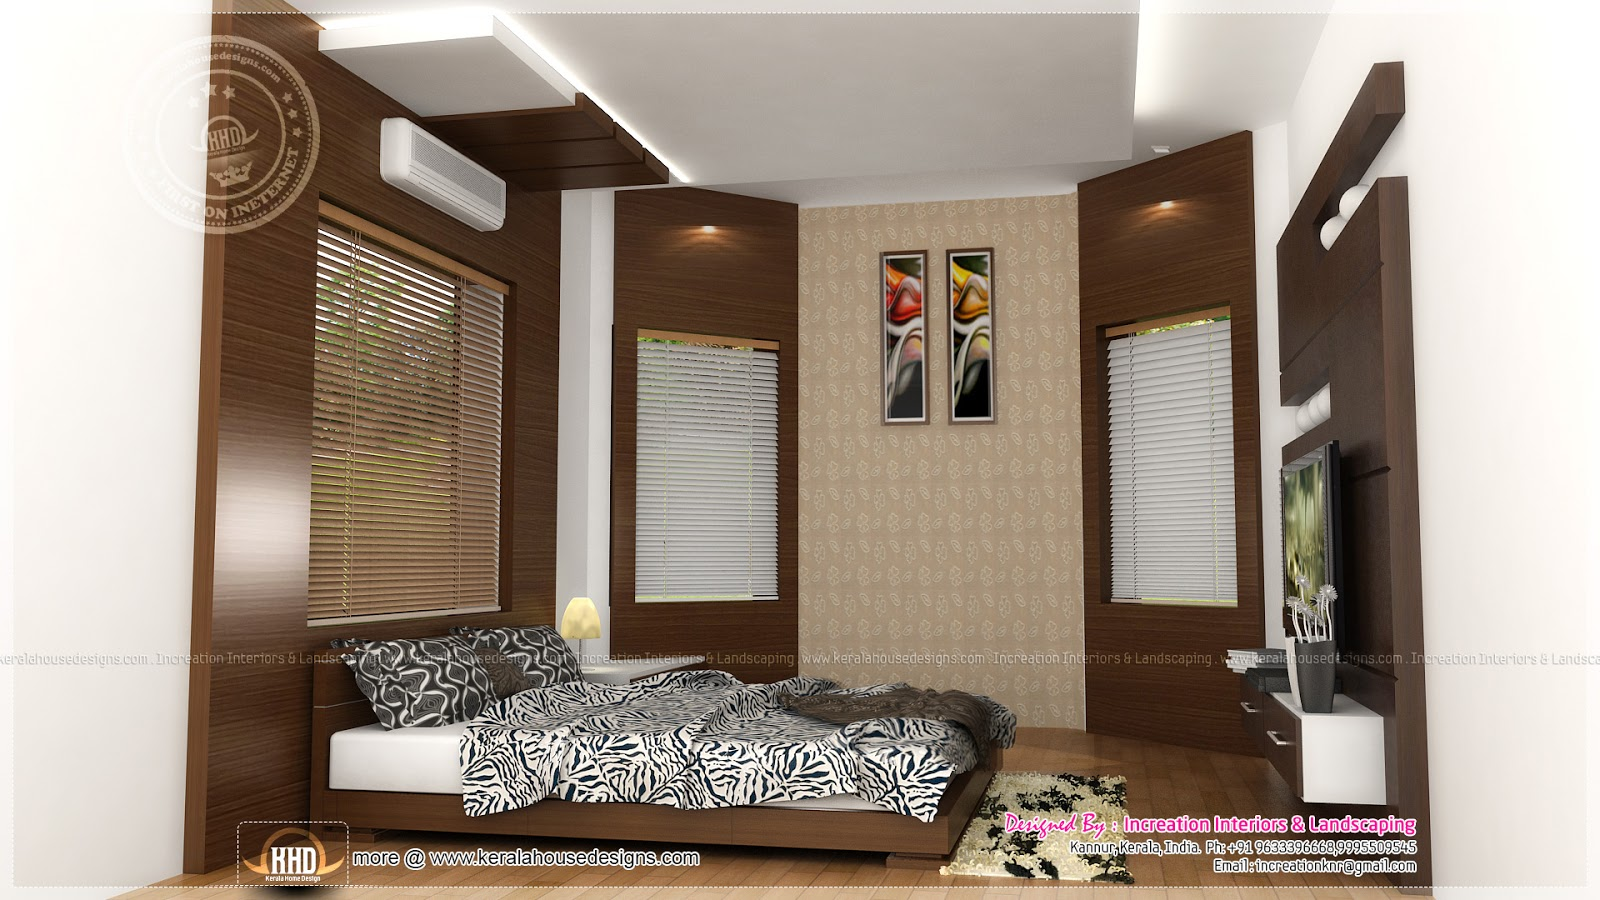 Interior Designs By Increation, Kannur, Kerala